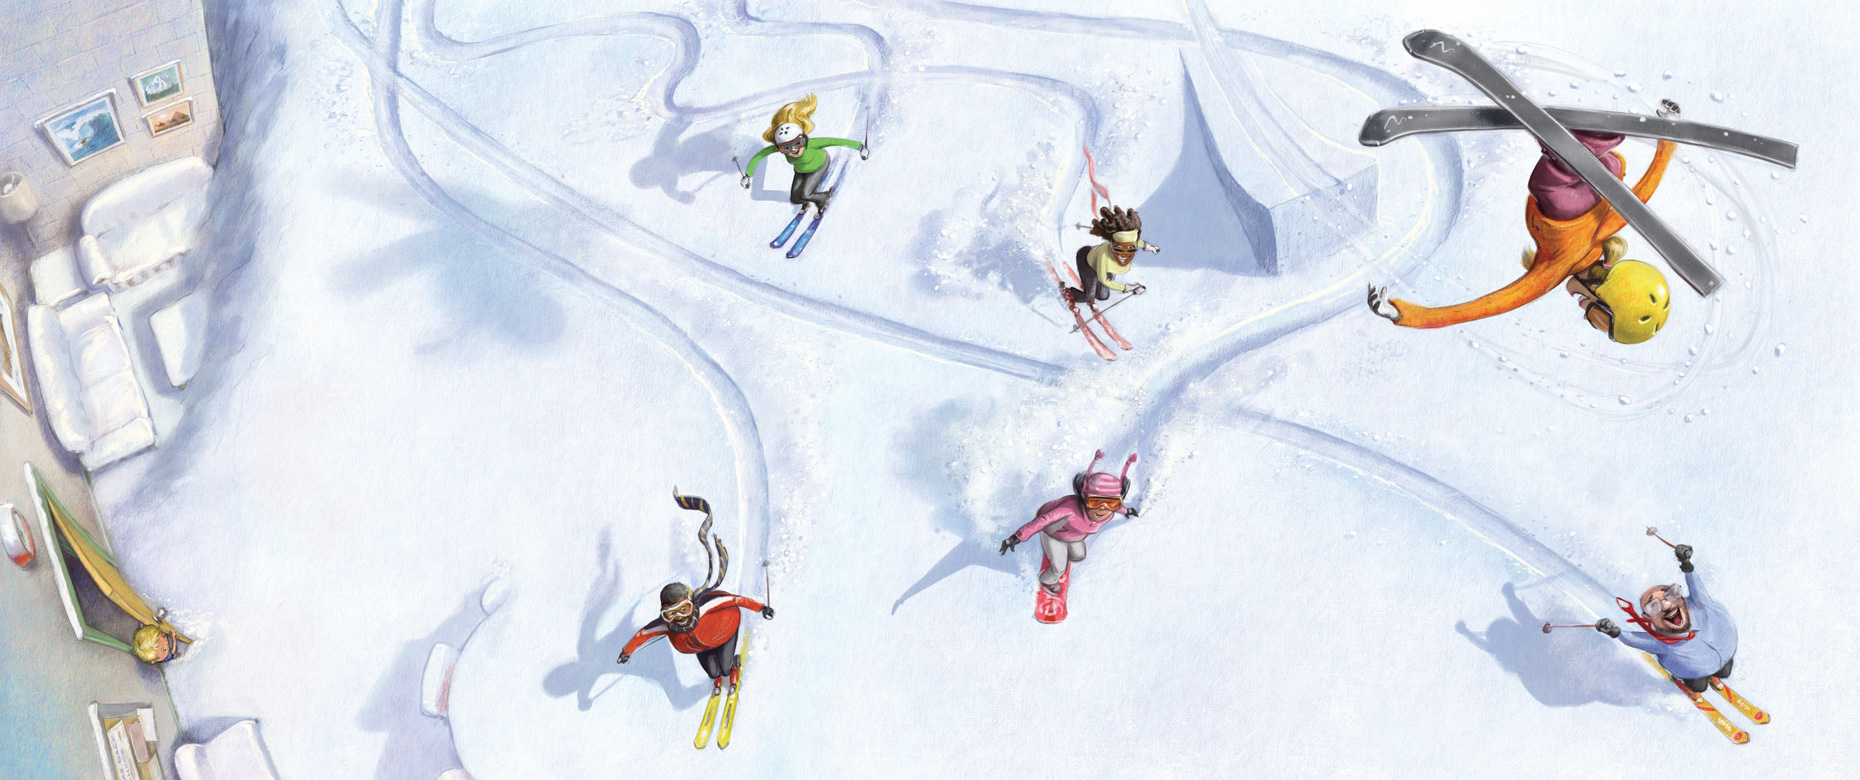 mcwilliam_childrens_skiing.jpg